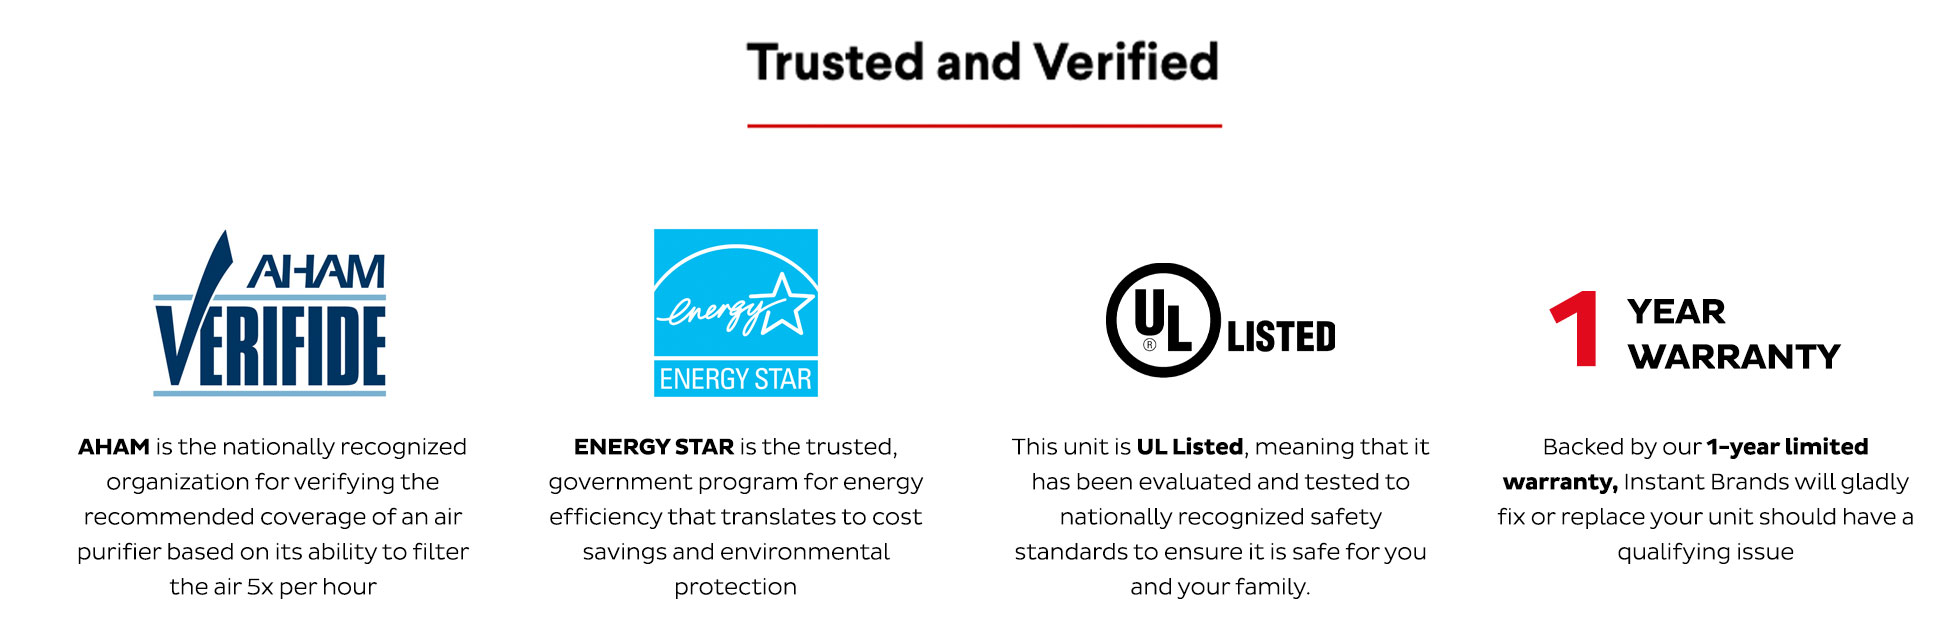 Trusted and verified